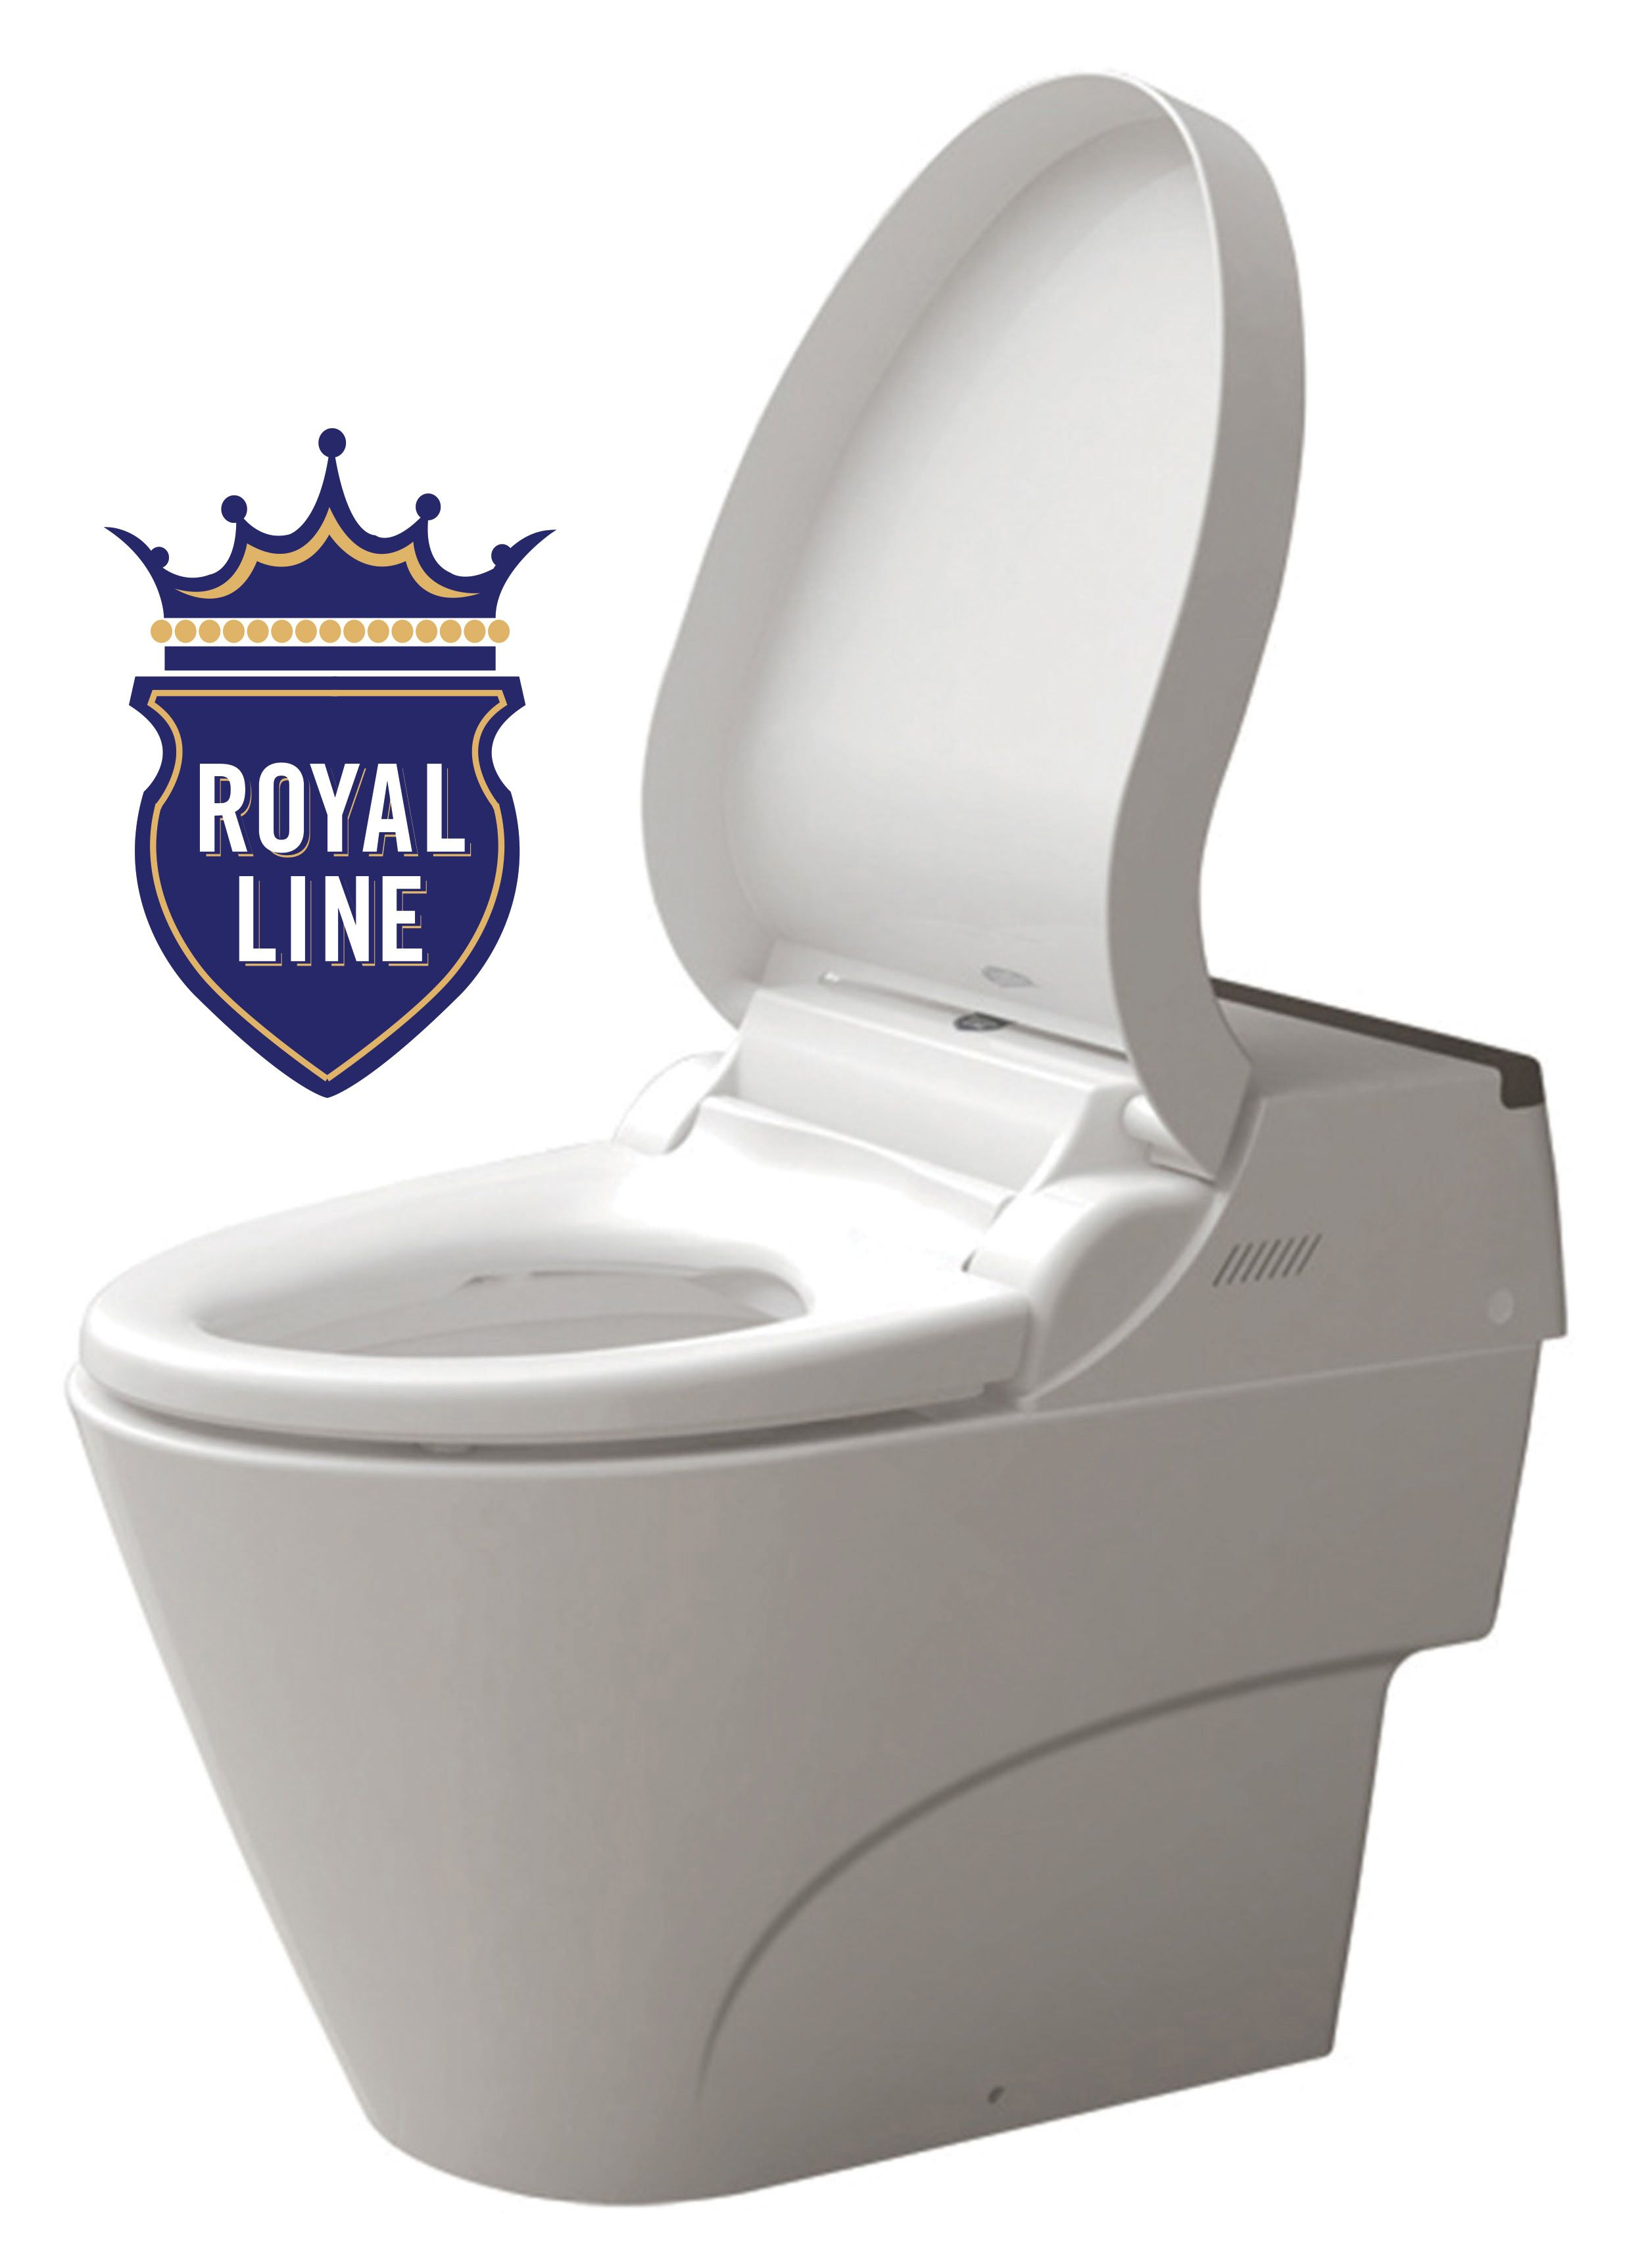 Super Enhance Your Bathroom With The Onedrous Integrated One Piece Pabps2019 Chair Design Images Pabps2019Com